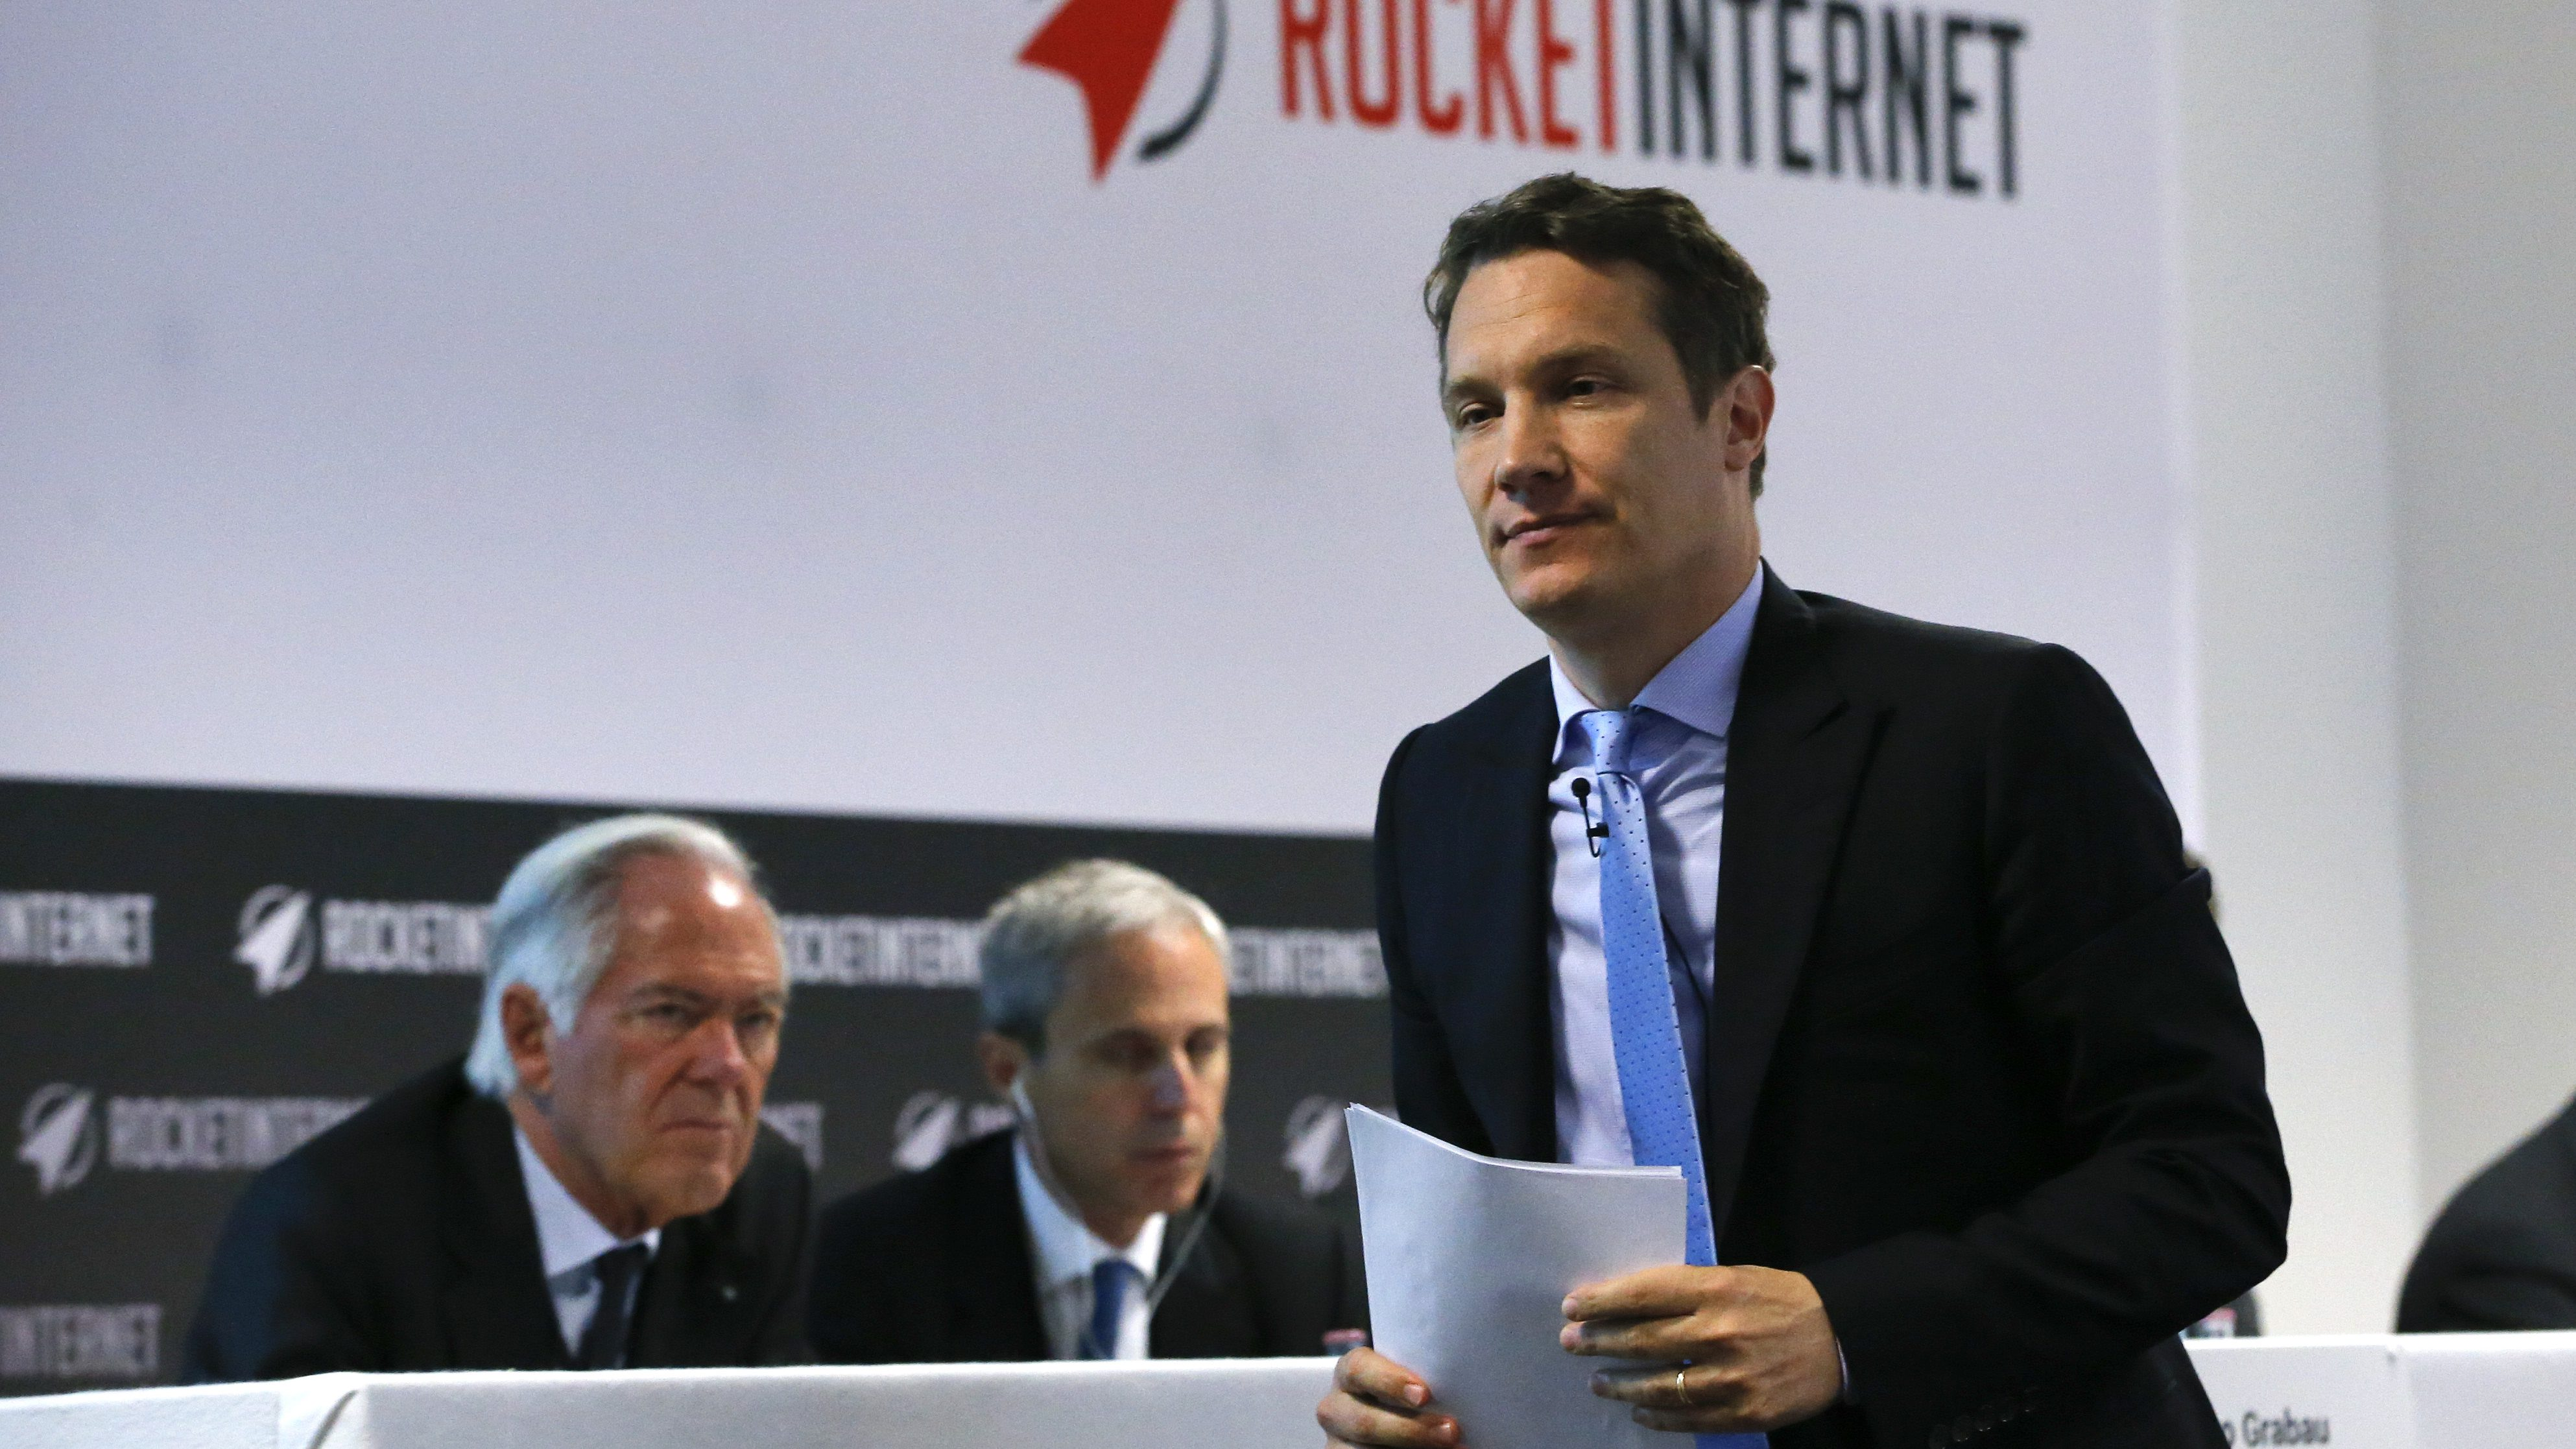 Oliver Samwer, CEO of Rocket Internet, a German venture capital group walks to the podium during their shareholder meeting in Berlin, Germany, June 23, 2015. Germany's Rocket Internet plans to seek shareholders' permission to issue a convertible bond of up to 2 billion euros  ($2.25 billion) by June 2020 at its shareholder meeting on Tuesday to increase its financial flexibility for its global investment spree.